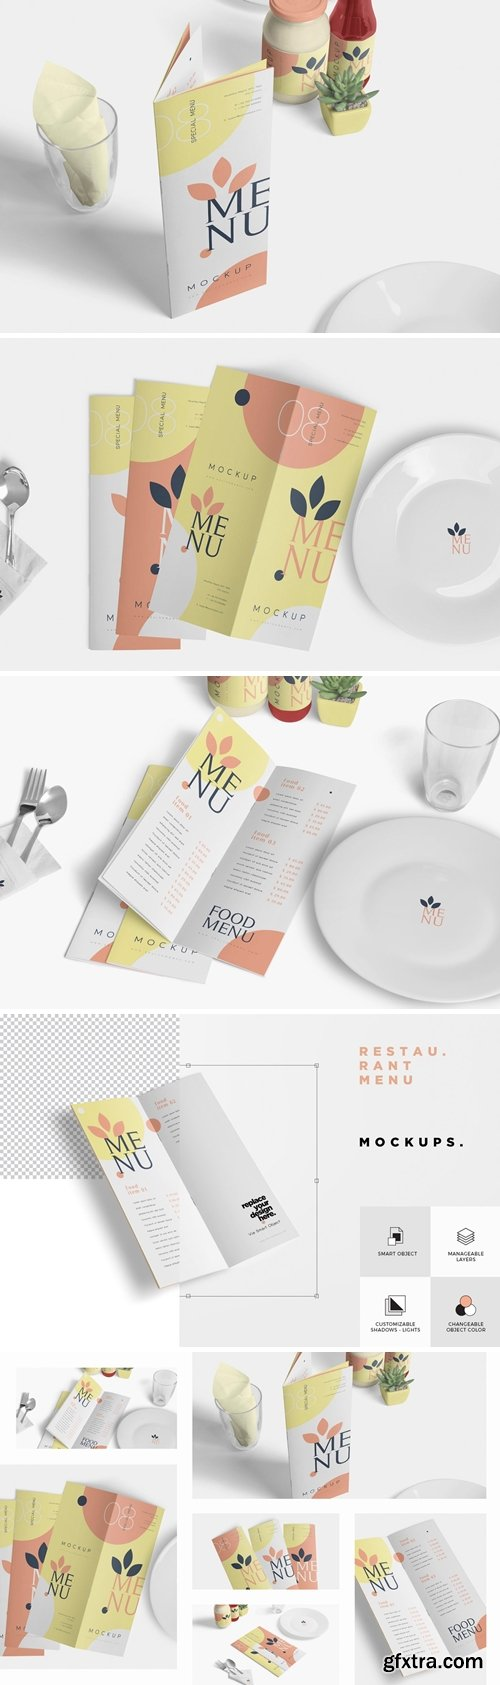 CM - Food Menu Book Mockups 3513670